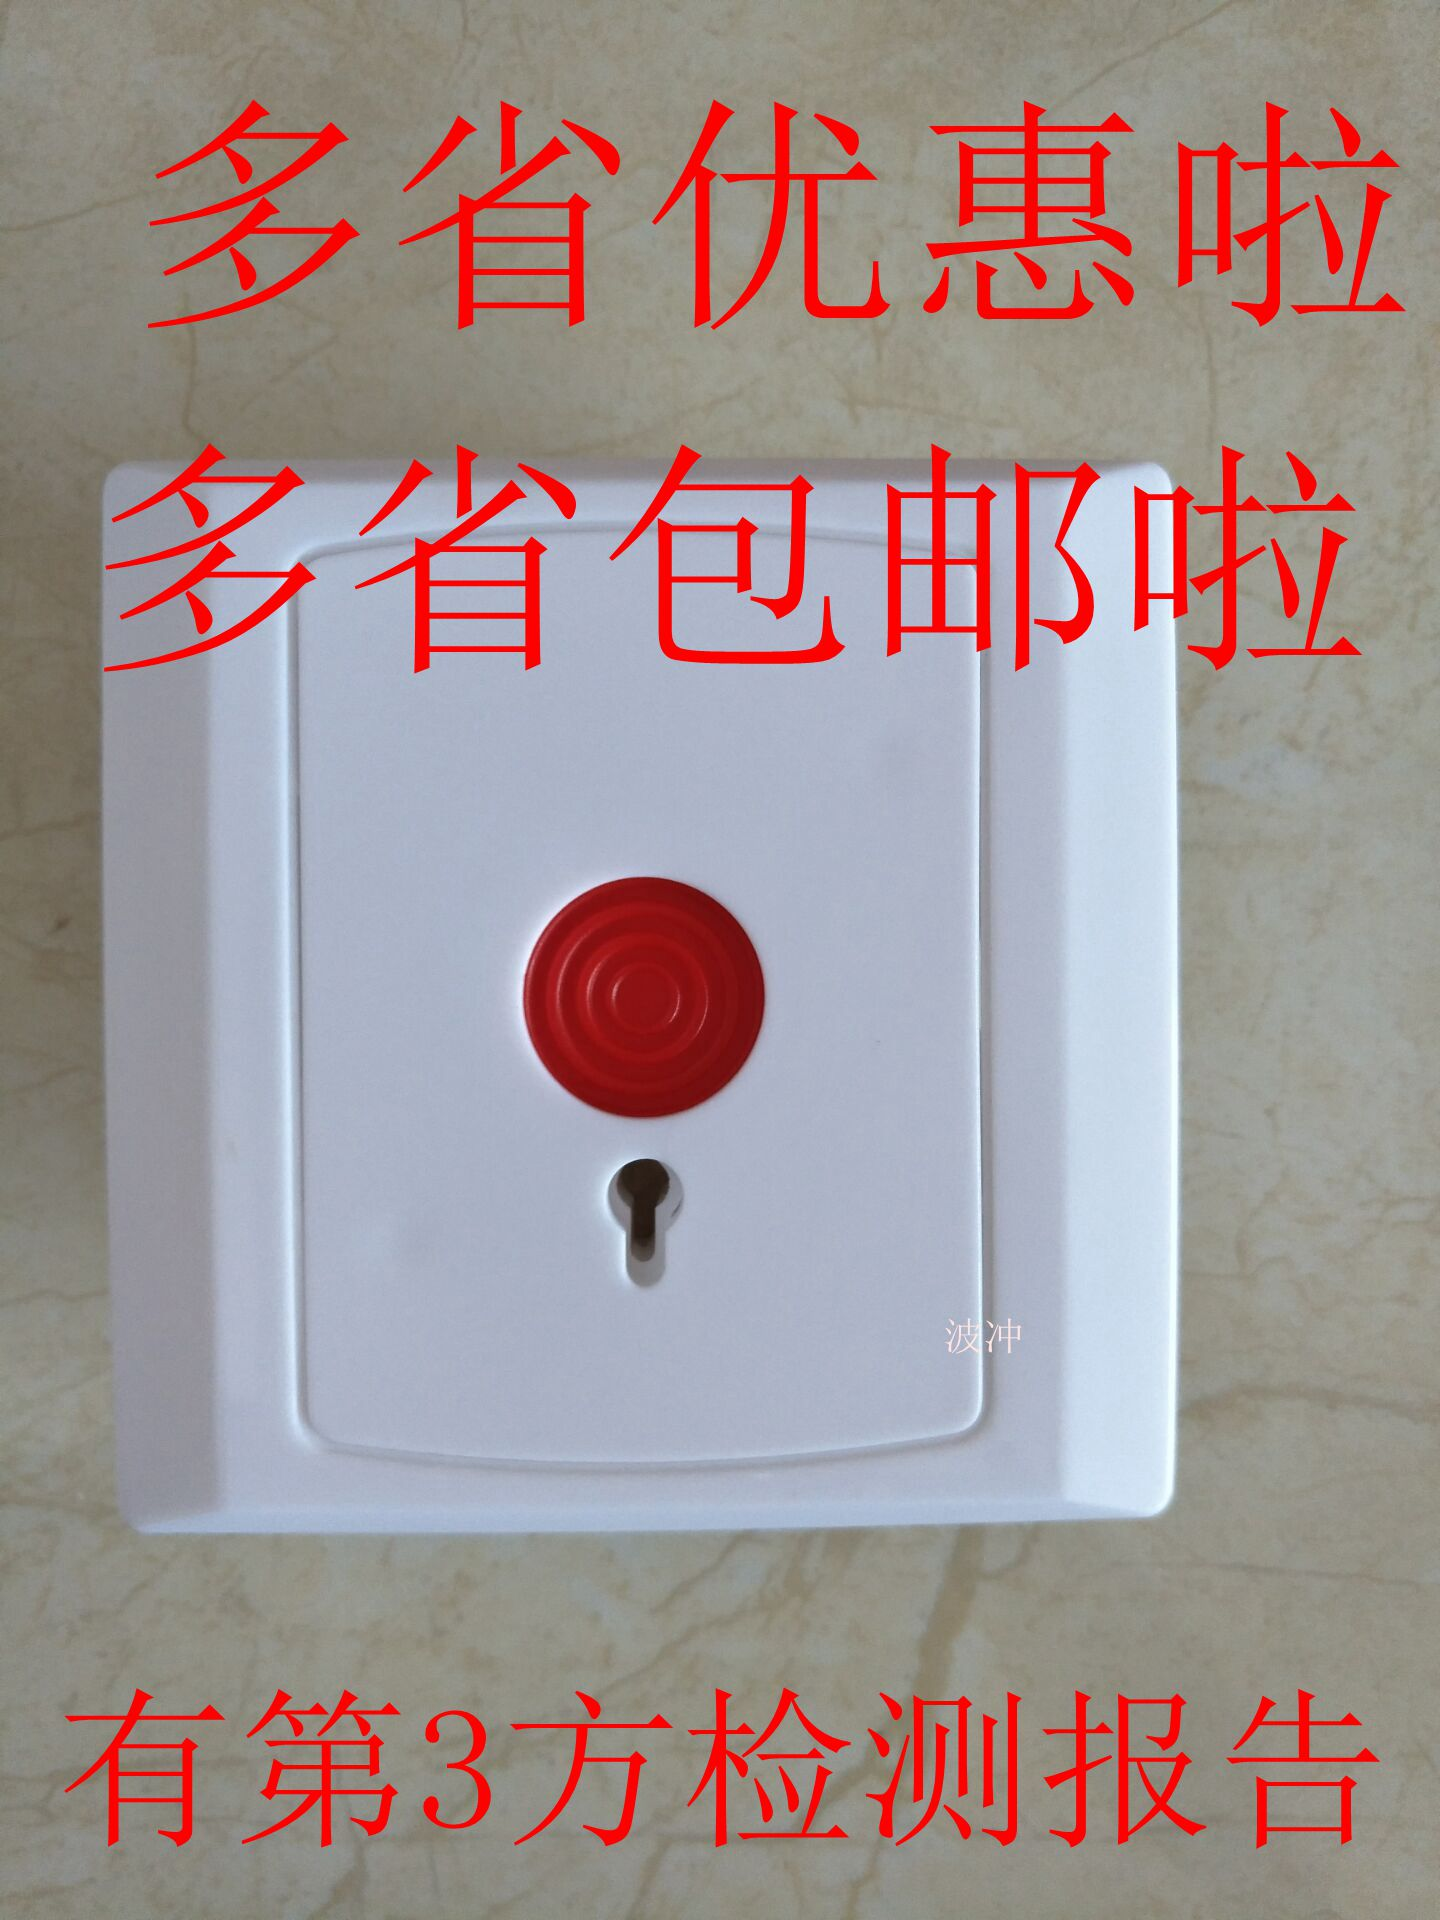 Shock Emergency Button PB-28B Bank Fire Switch 86 Box Panel Key Call for Rescue Alarm is often on and off